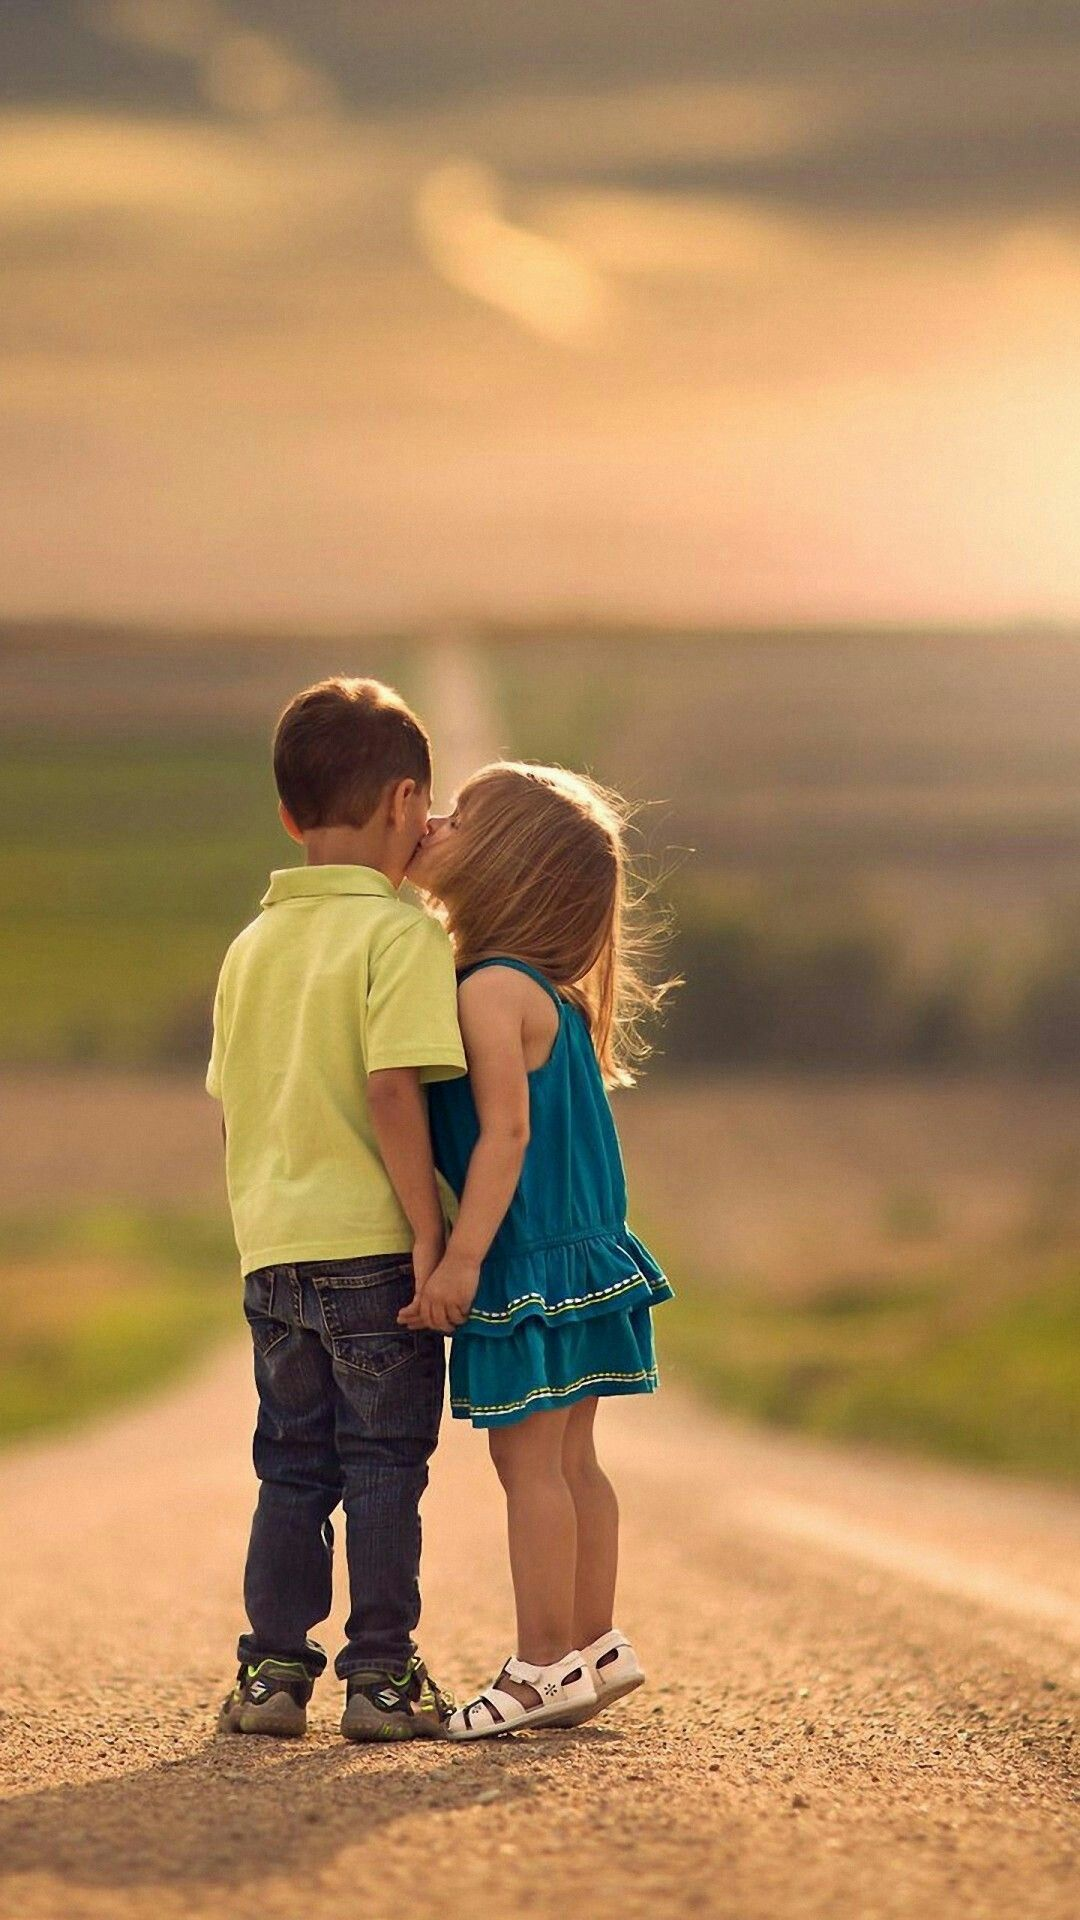 Join The Latest News Kids Kiss Cute Baby Couple Love Kiss Photo